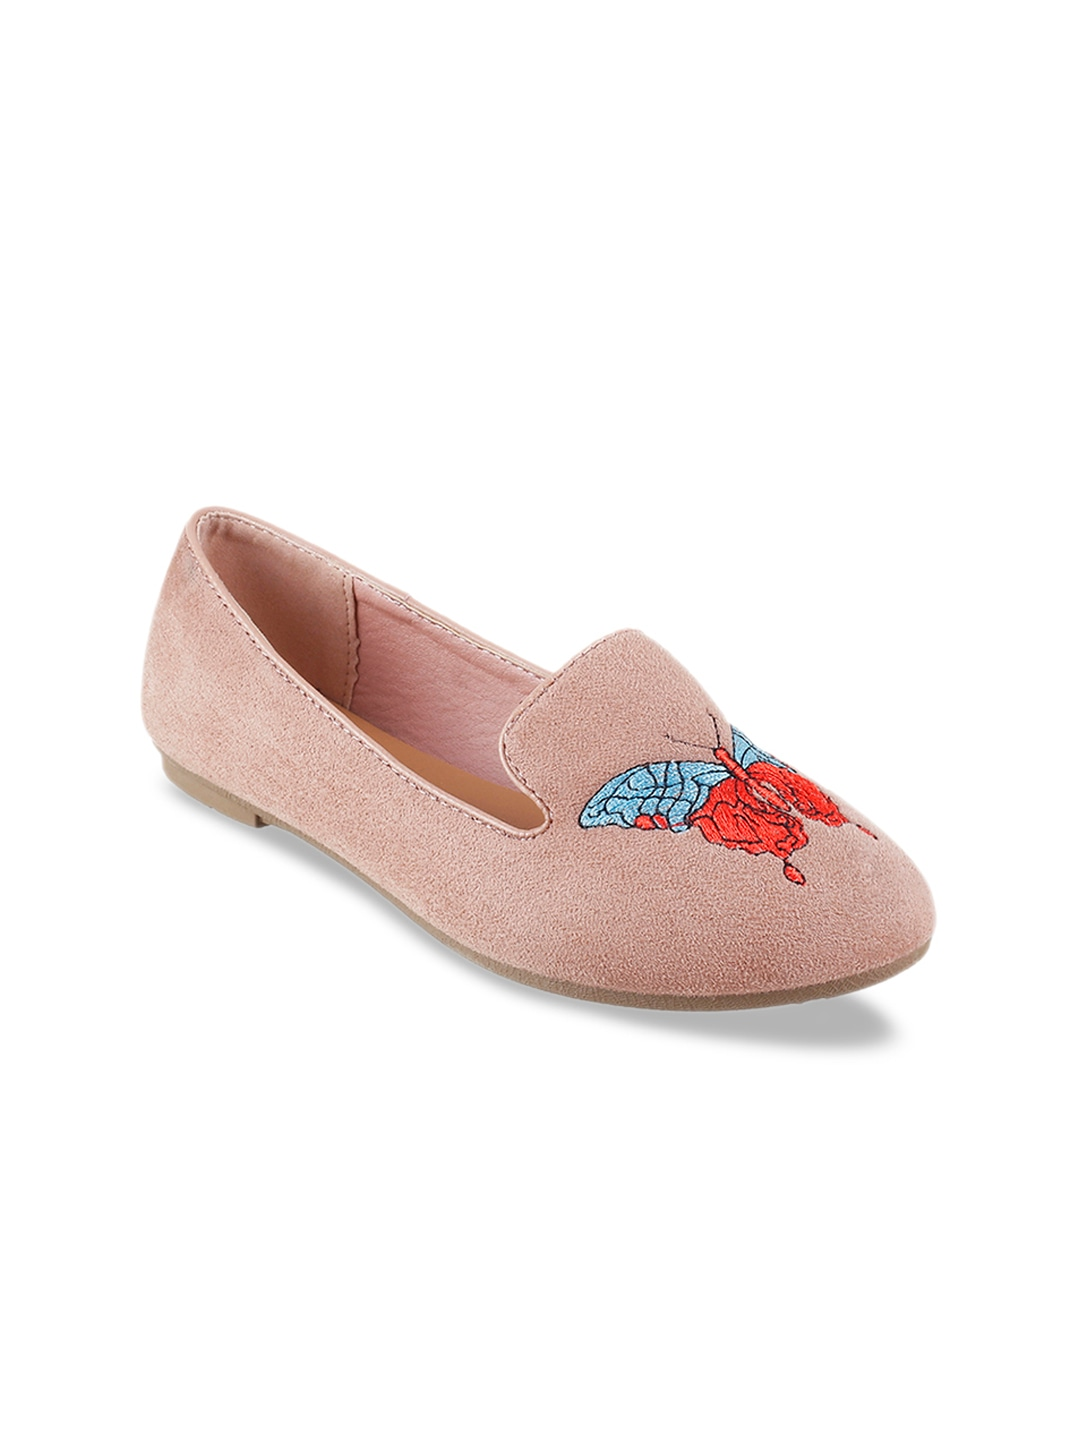 Pink Embroidered Ballerinas